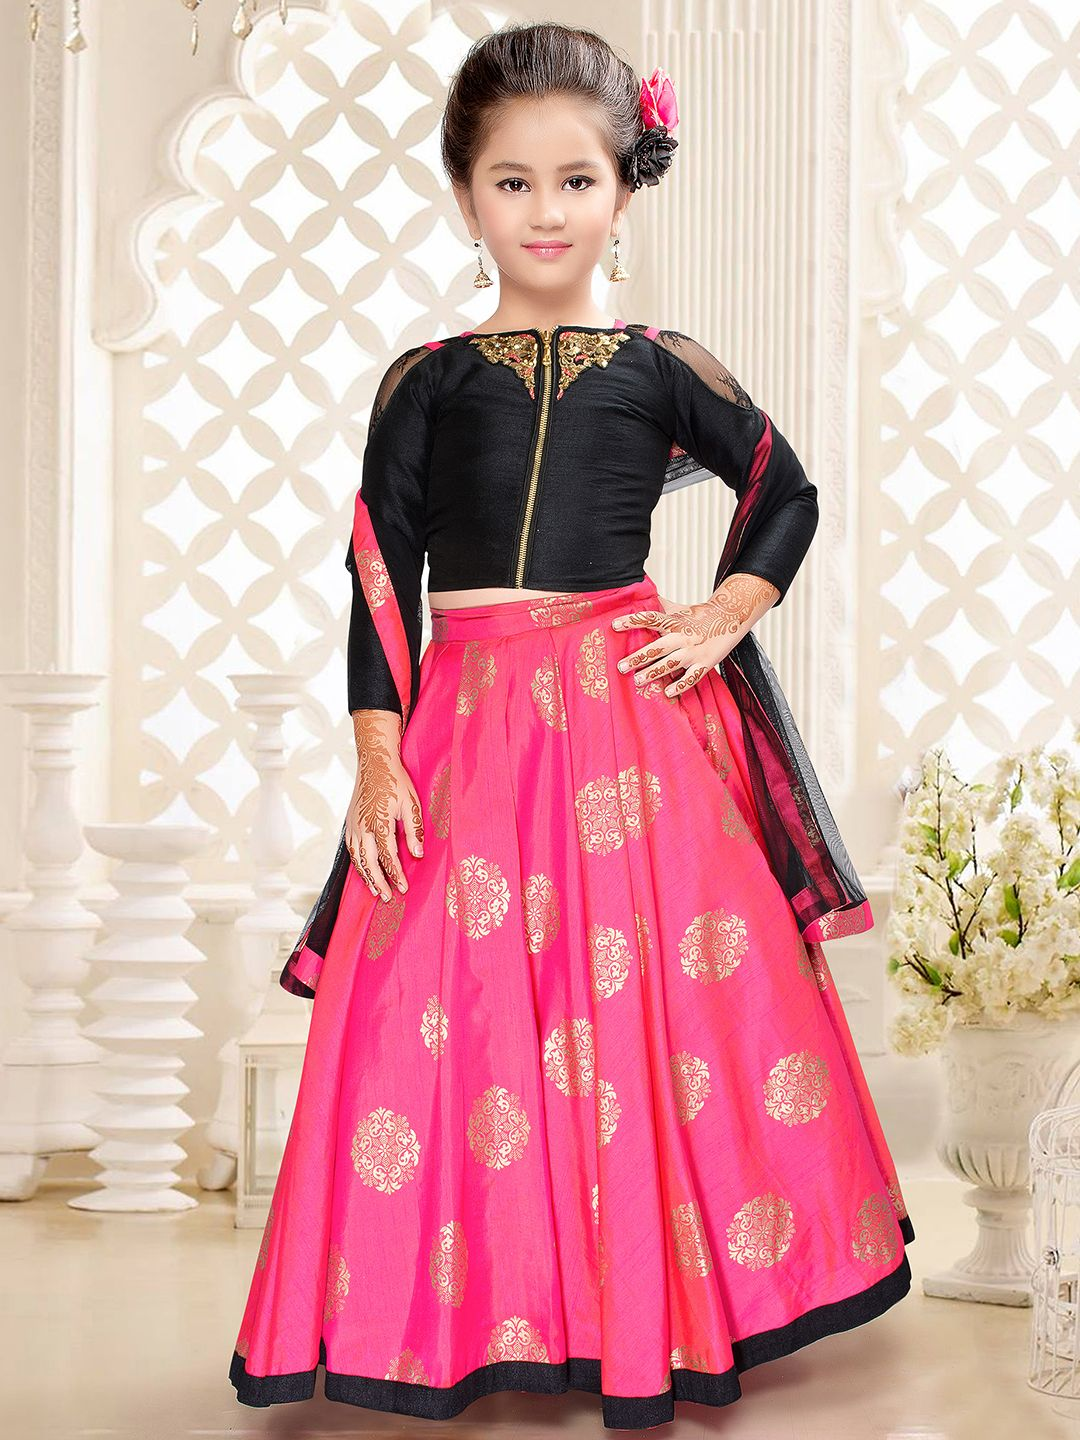 Top Indian wedding style for your little Princess Kids Indian Wear d259a716e